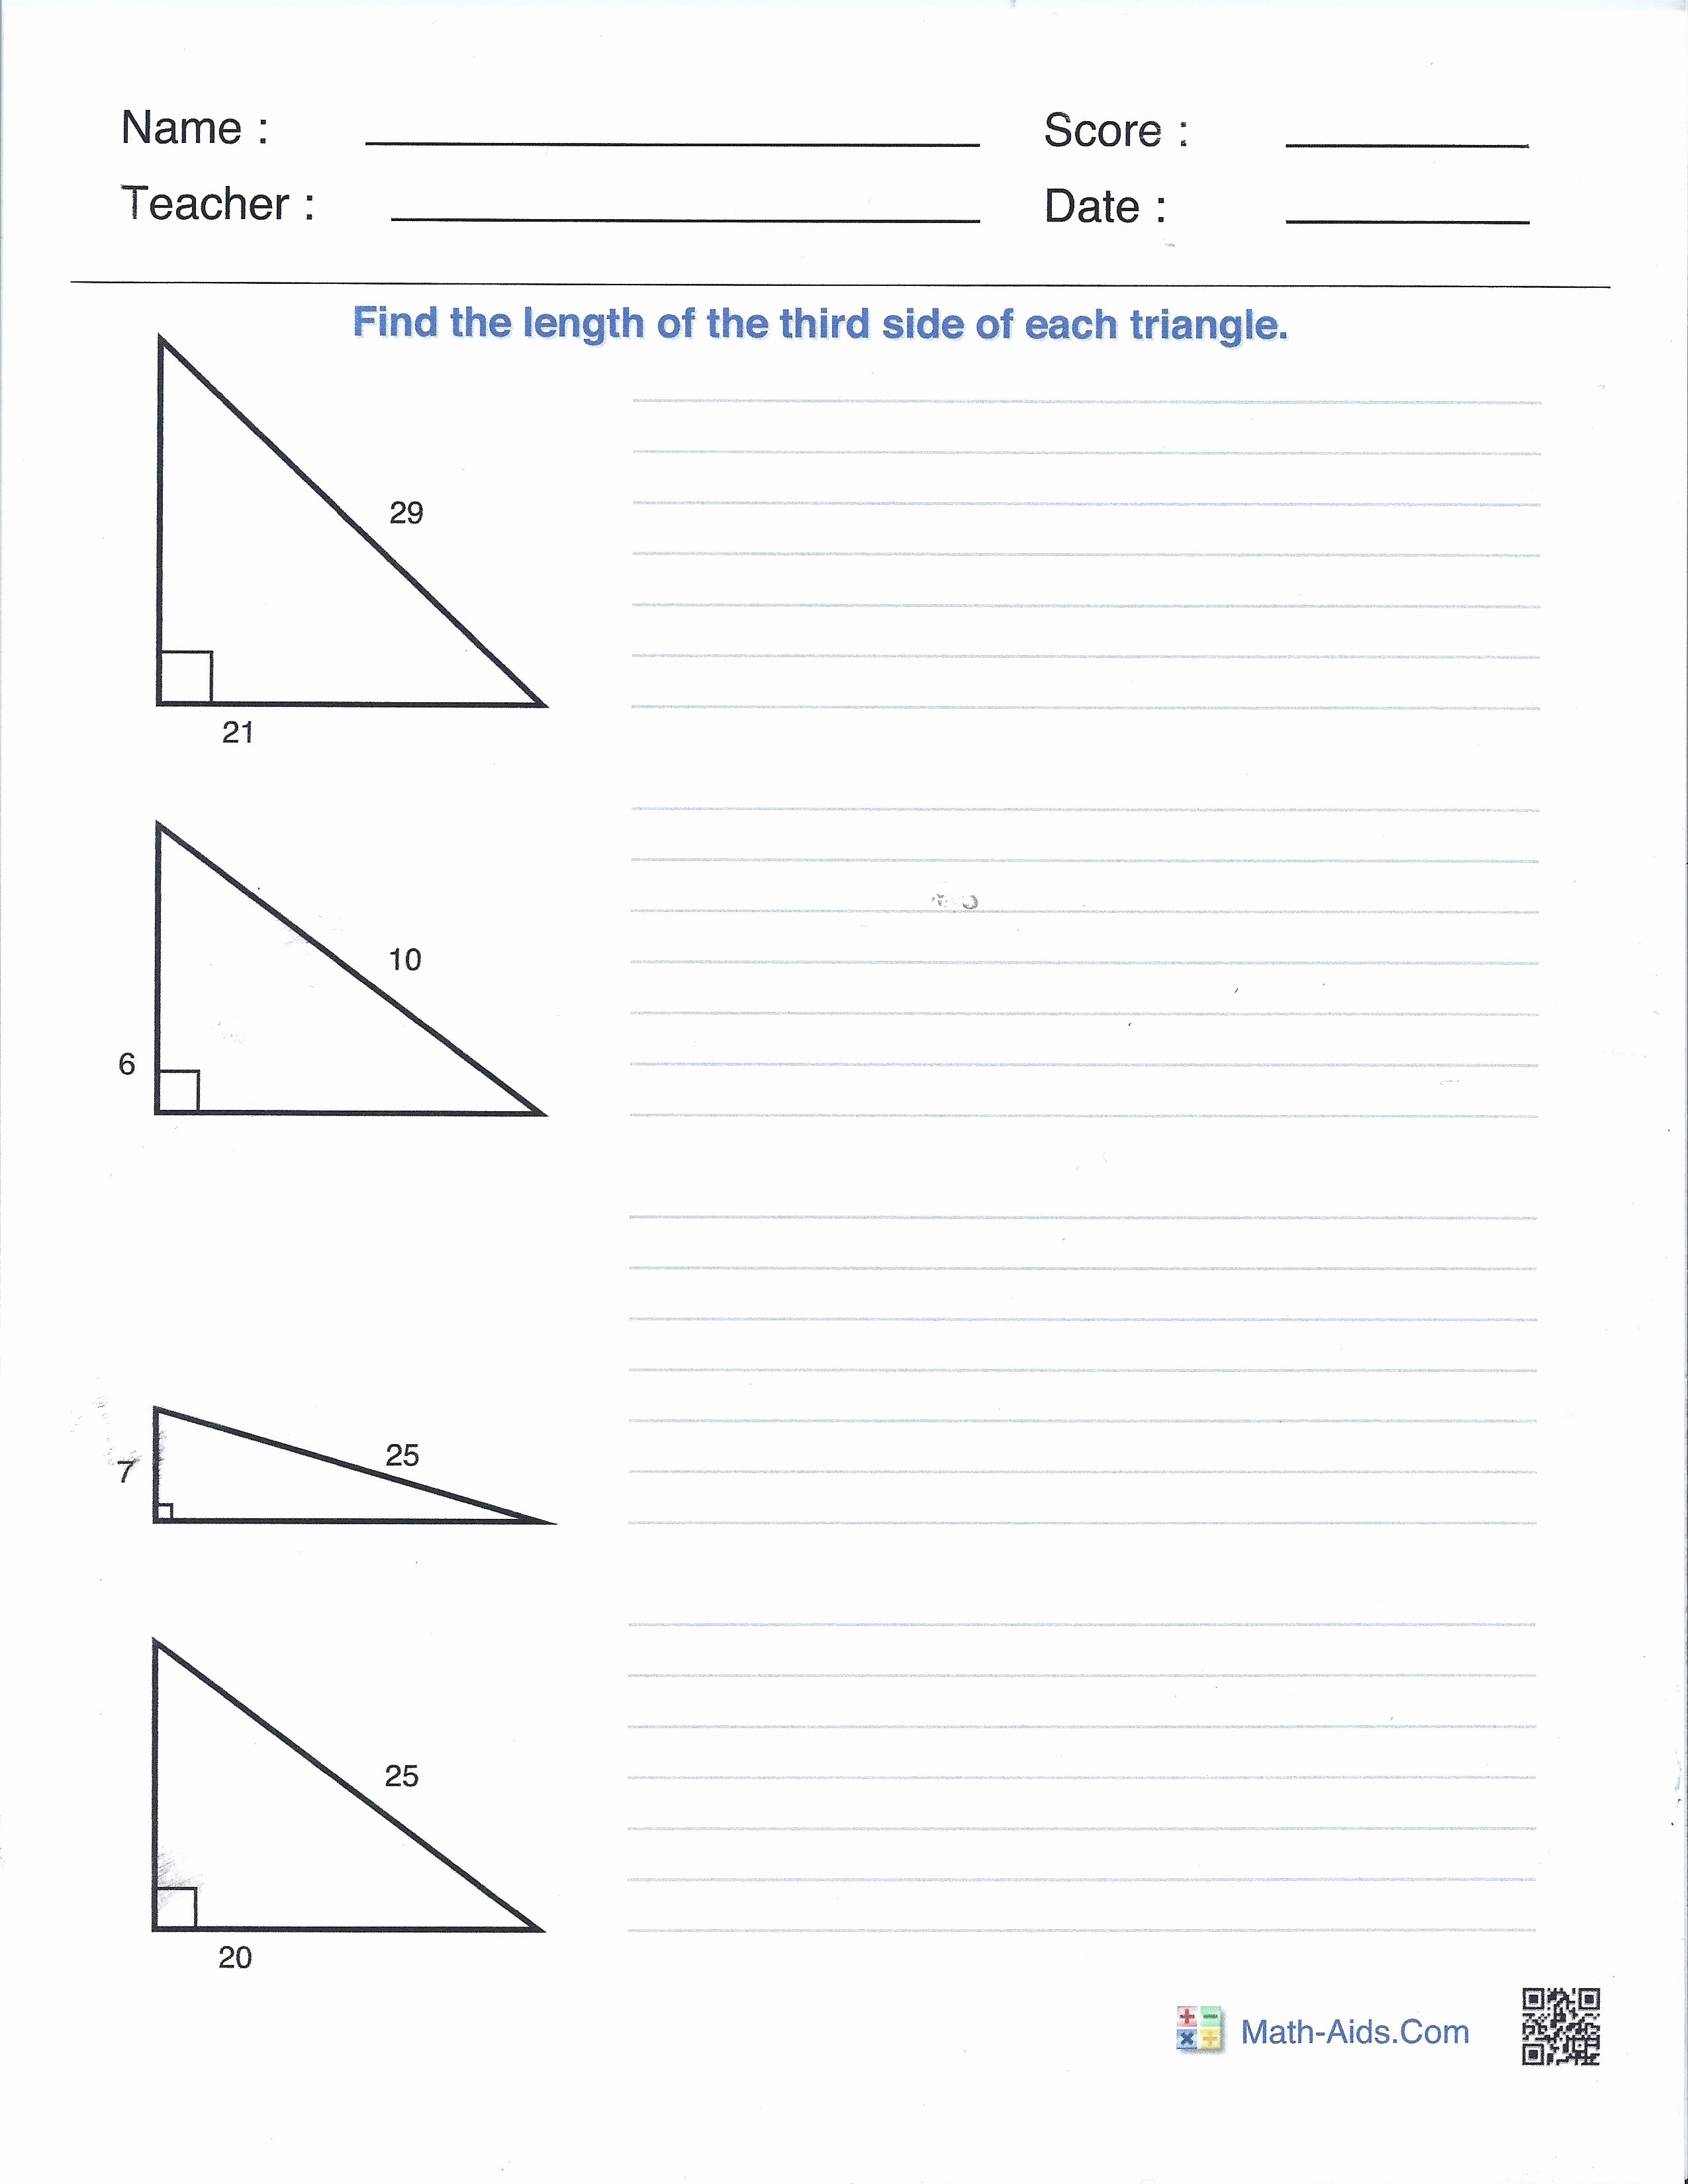 50 Pythagorean Theorem Worksheet With Answers